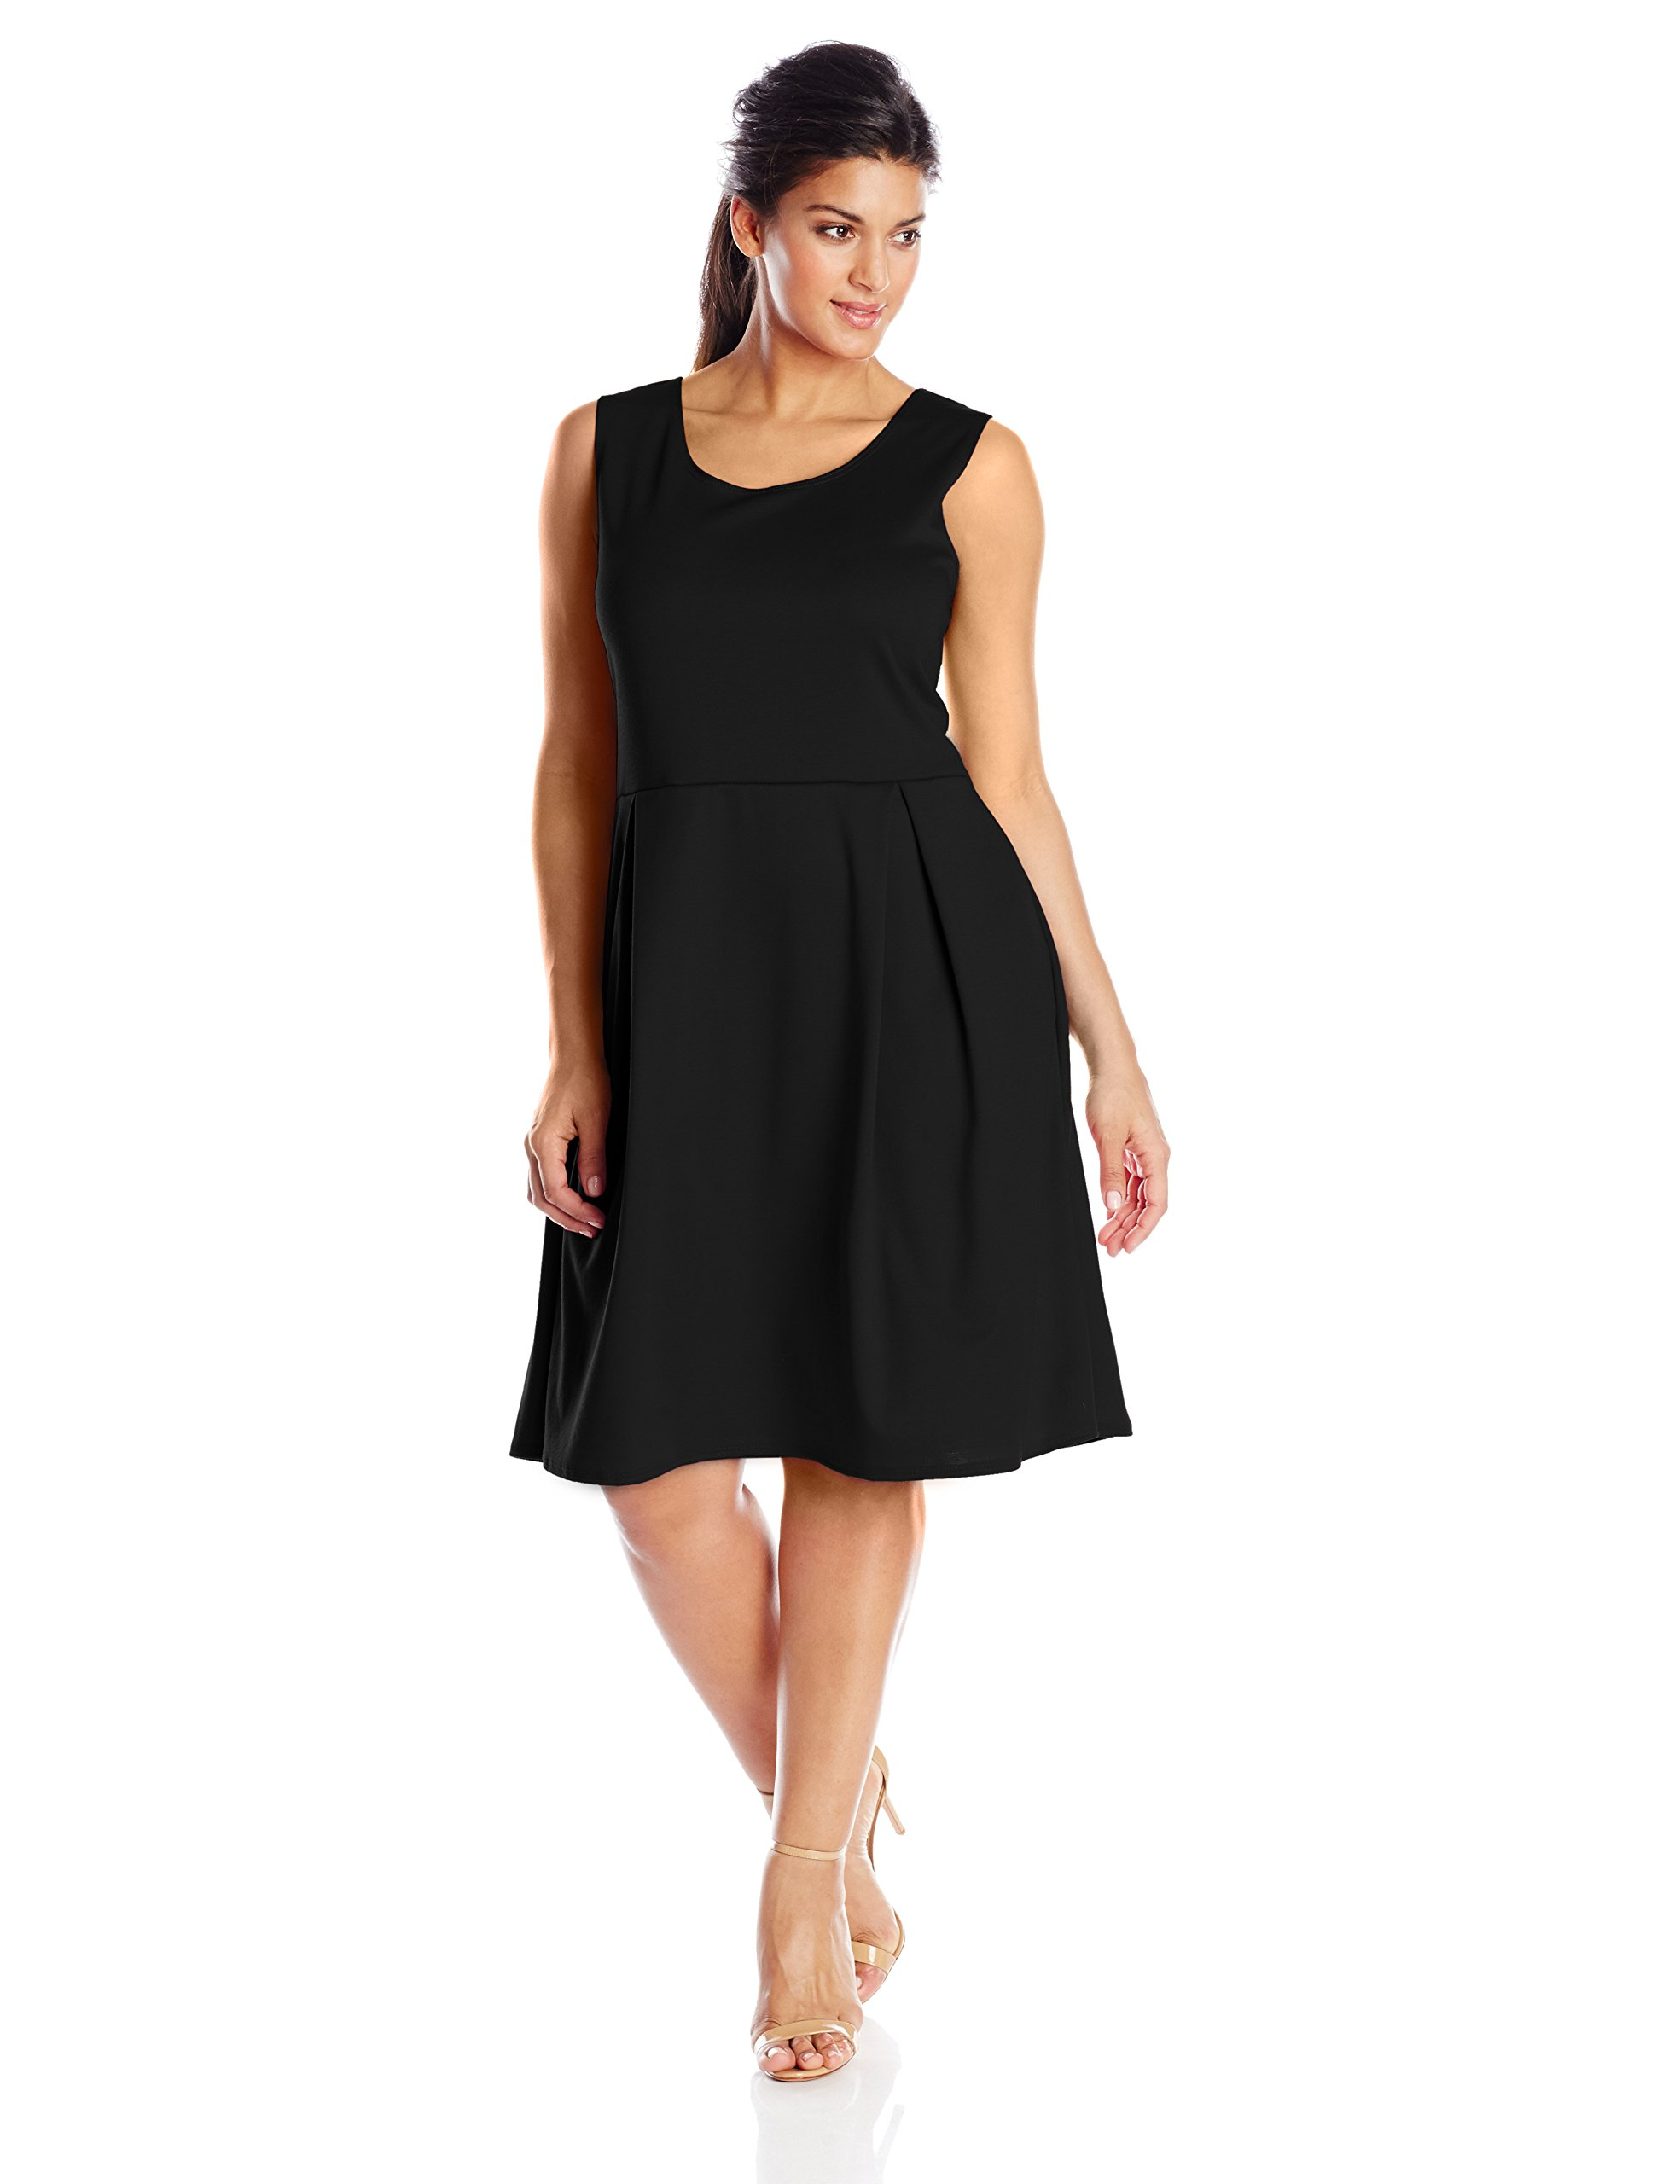 Star Vixen Women's Plus-Size Sleeveless Box-Pleat Skater Dress, Black, 1X